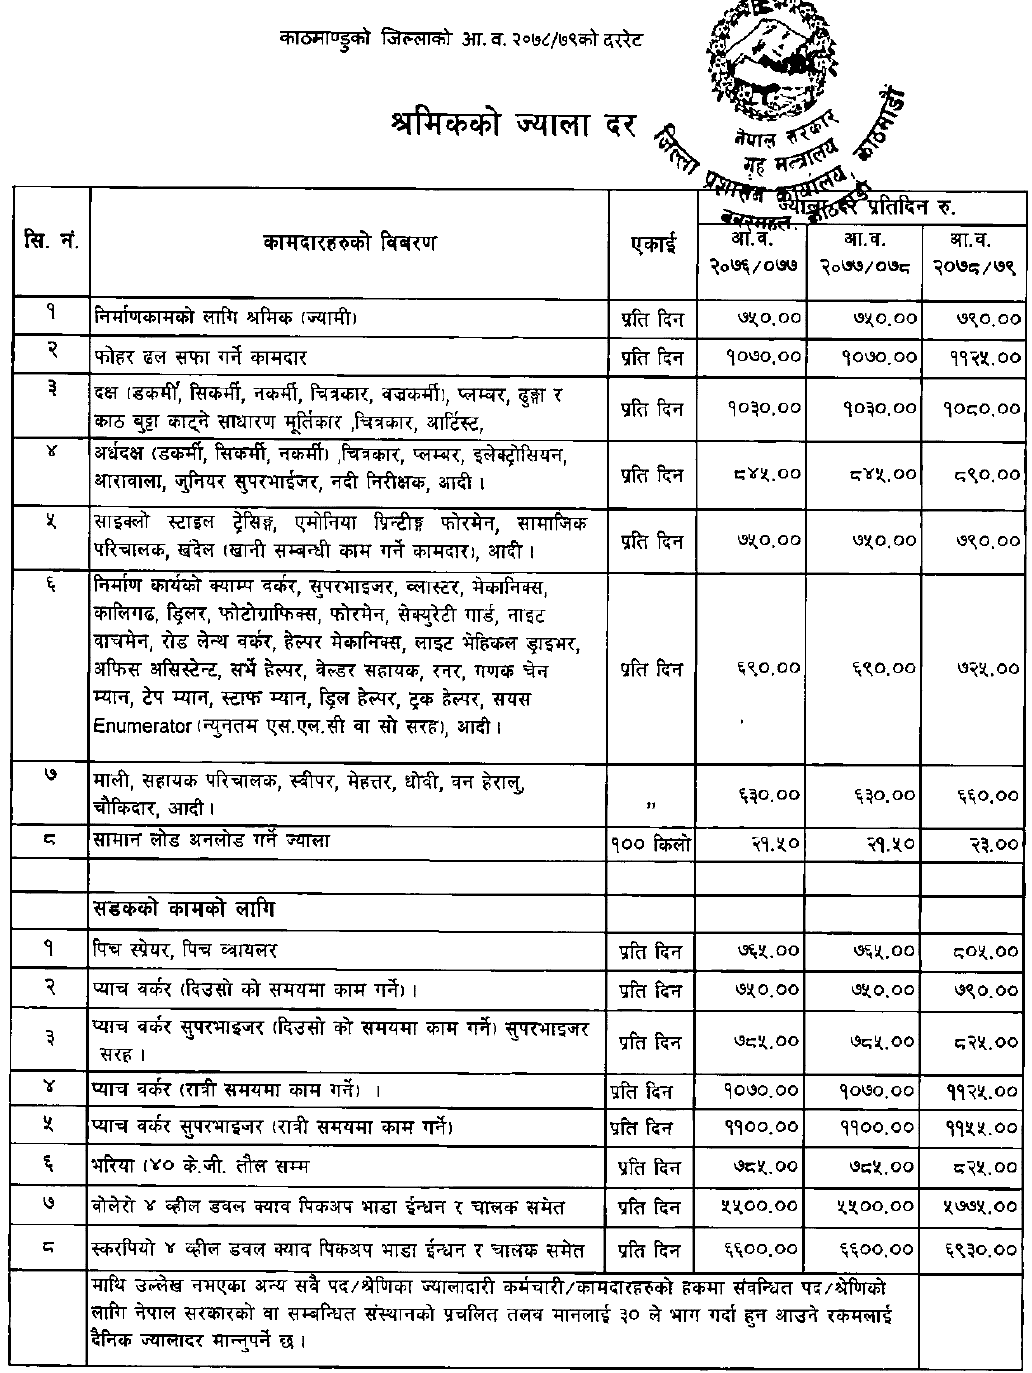 New wage Rate Fixed in Kathmandu District for the Fiscal Year 2078/79